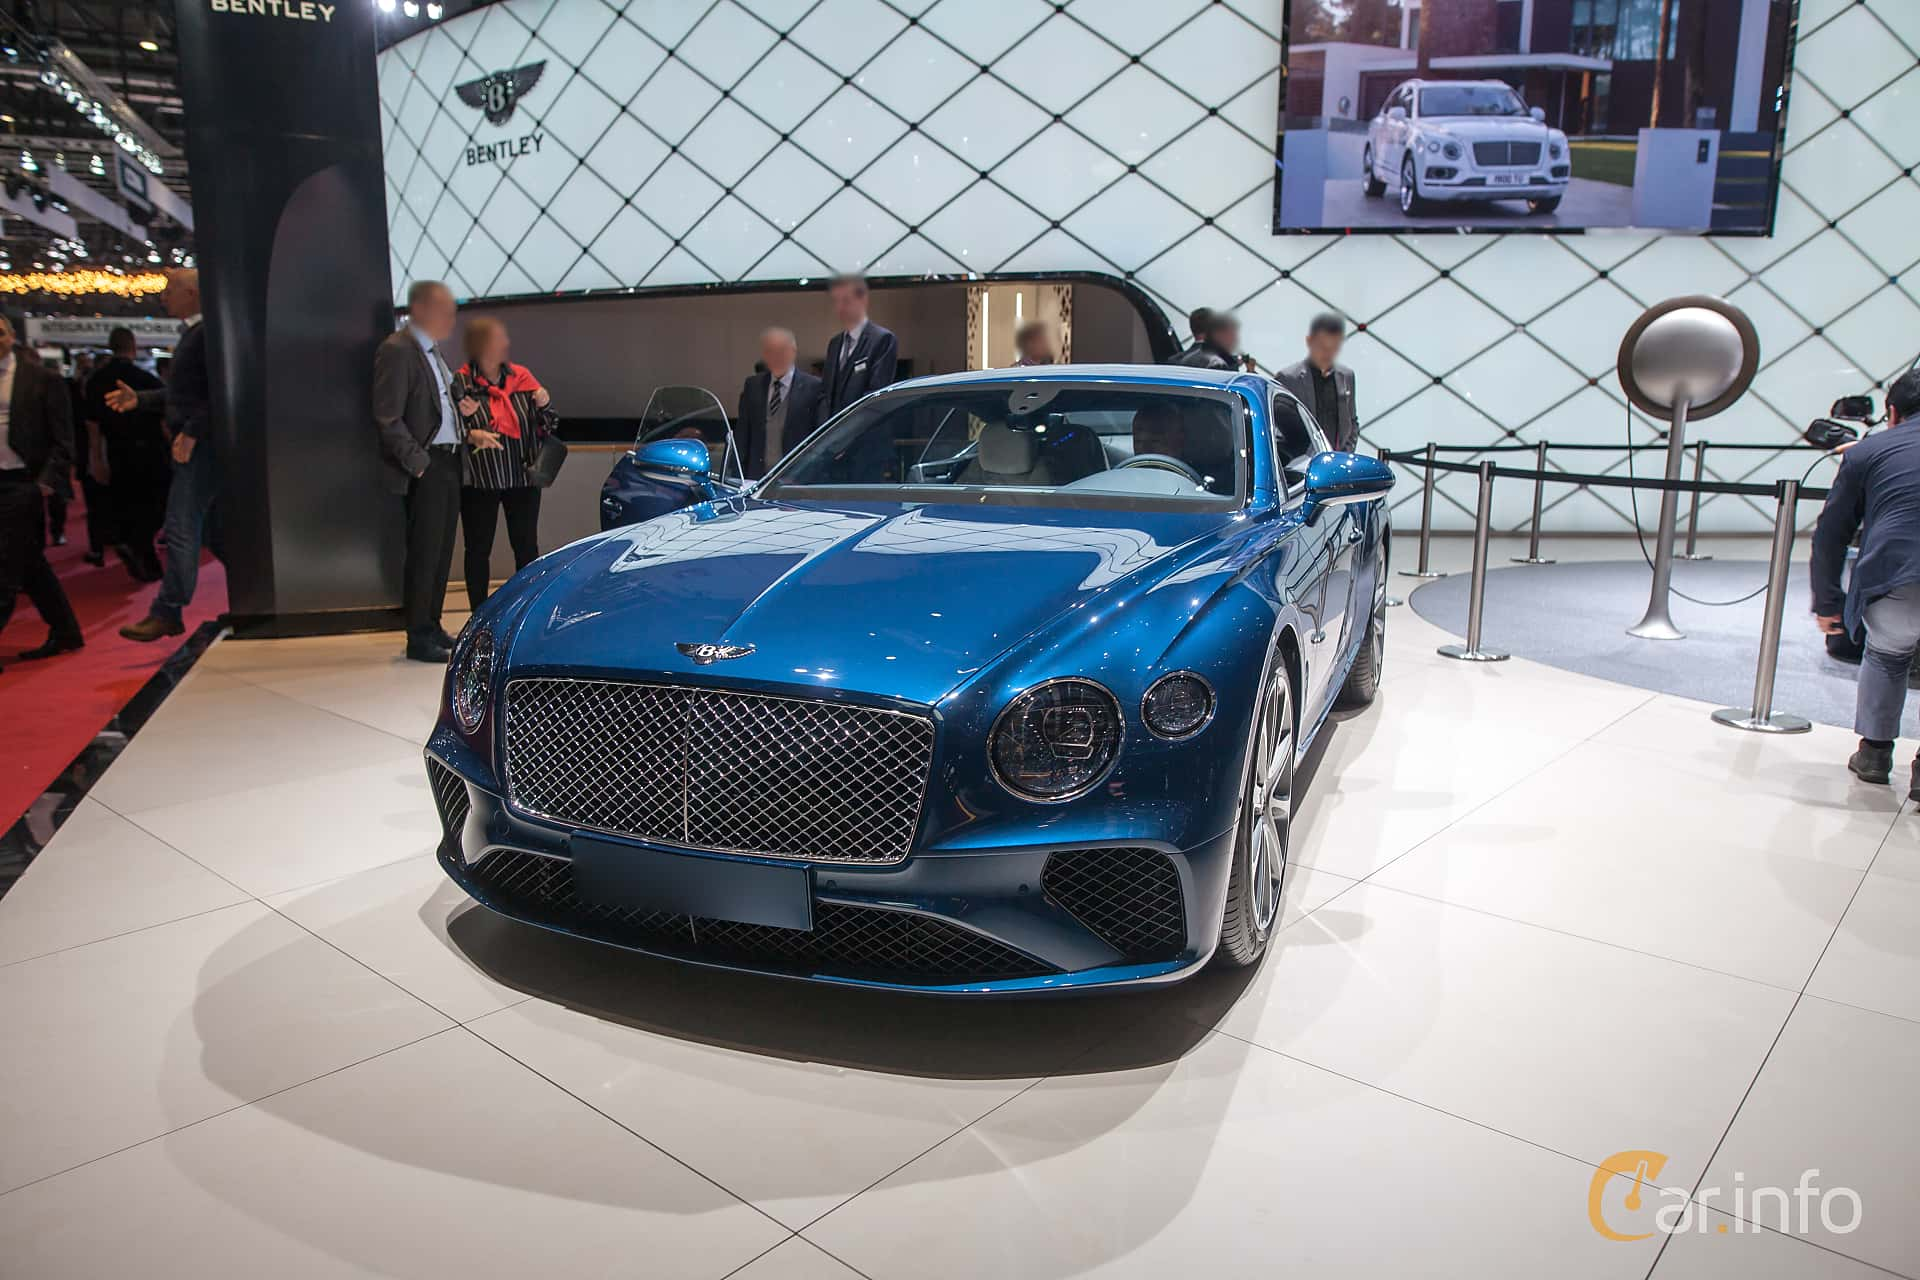 Bentley Continental GT 6.0 W12 TSI DCT, 635hp, 2018 at Geneva Motor Show 2018